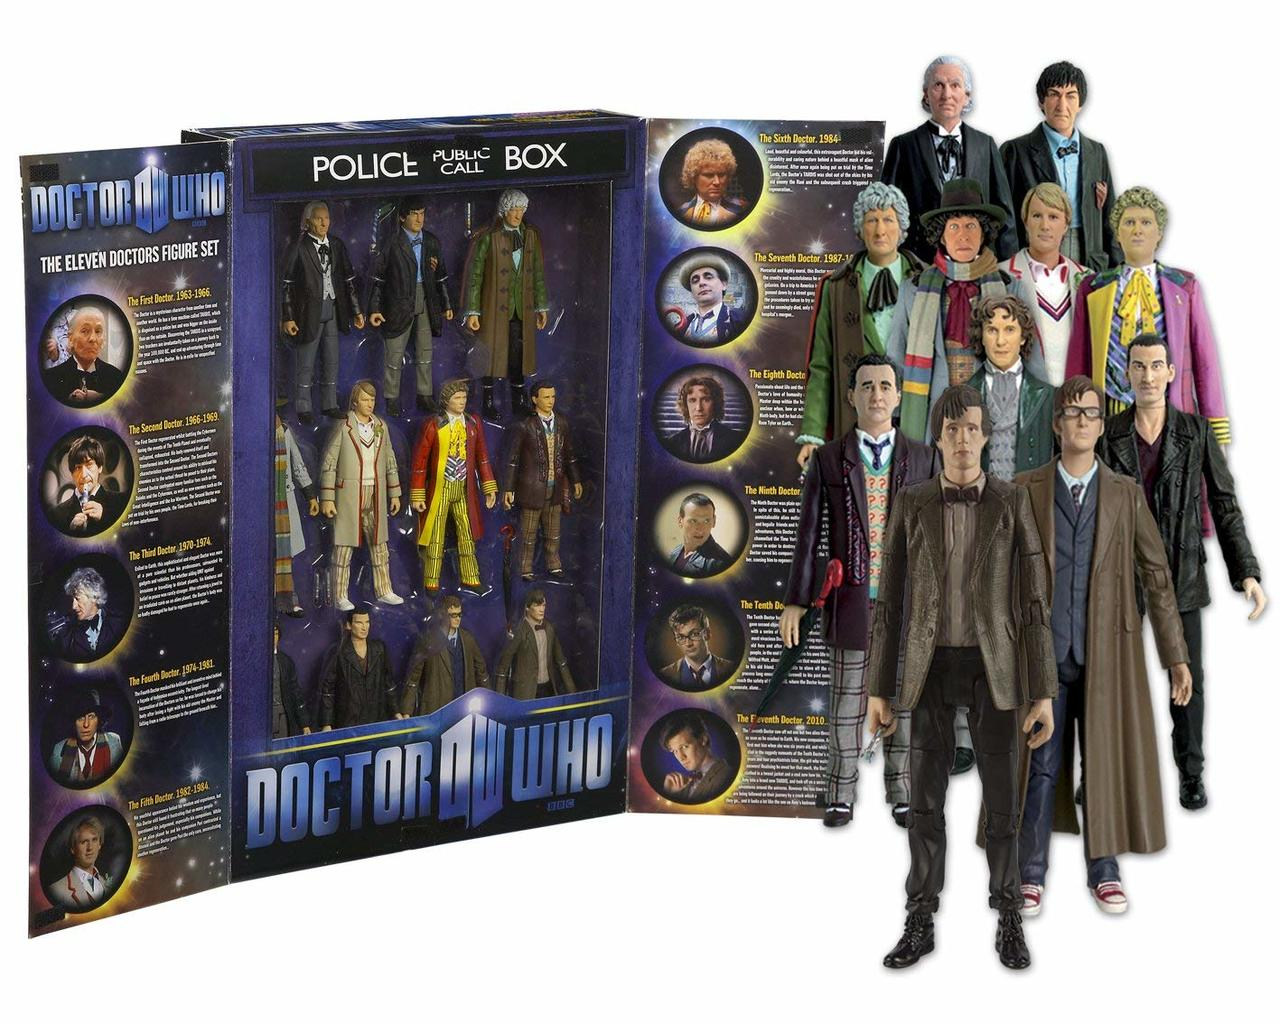 Doctor Who Eleven Doctors Action Figure Set Character Options